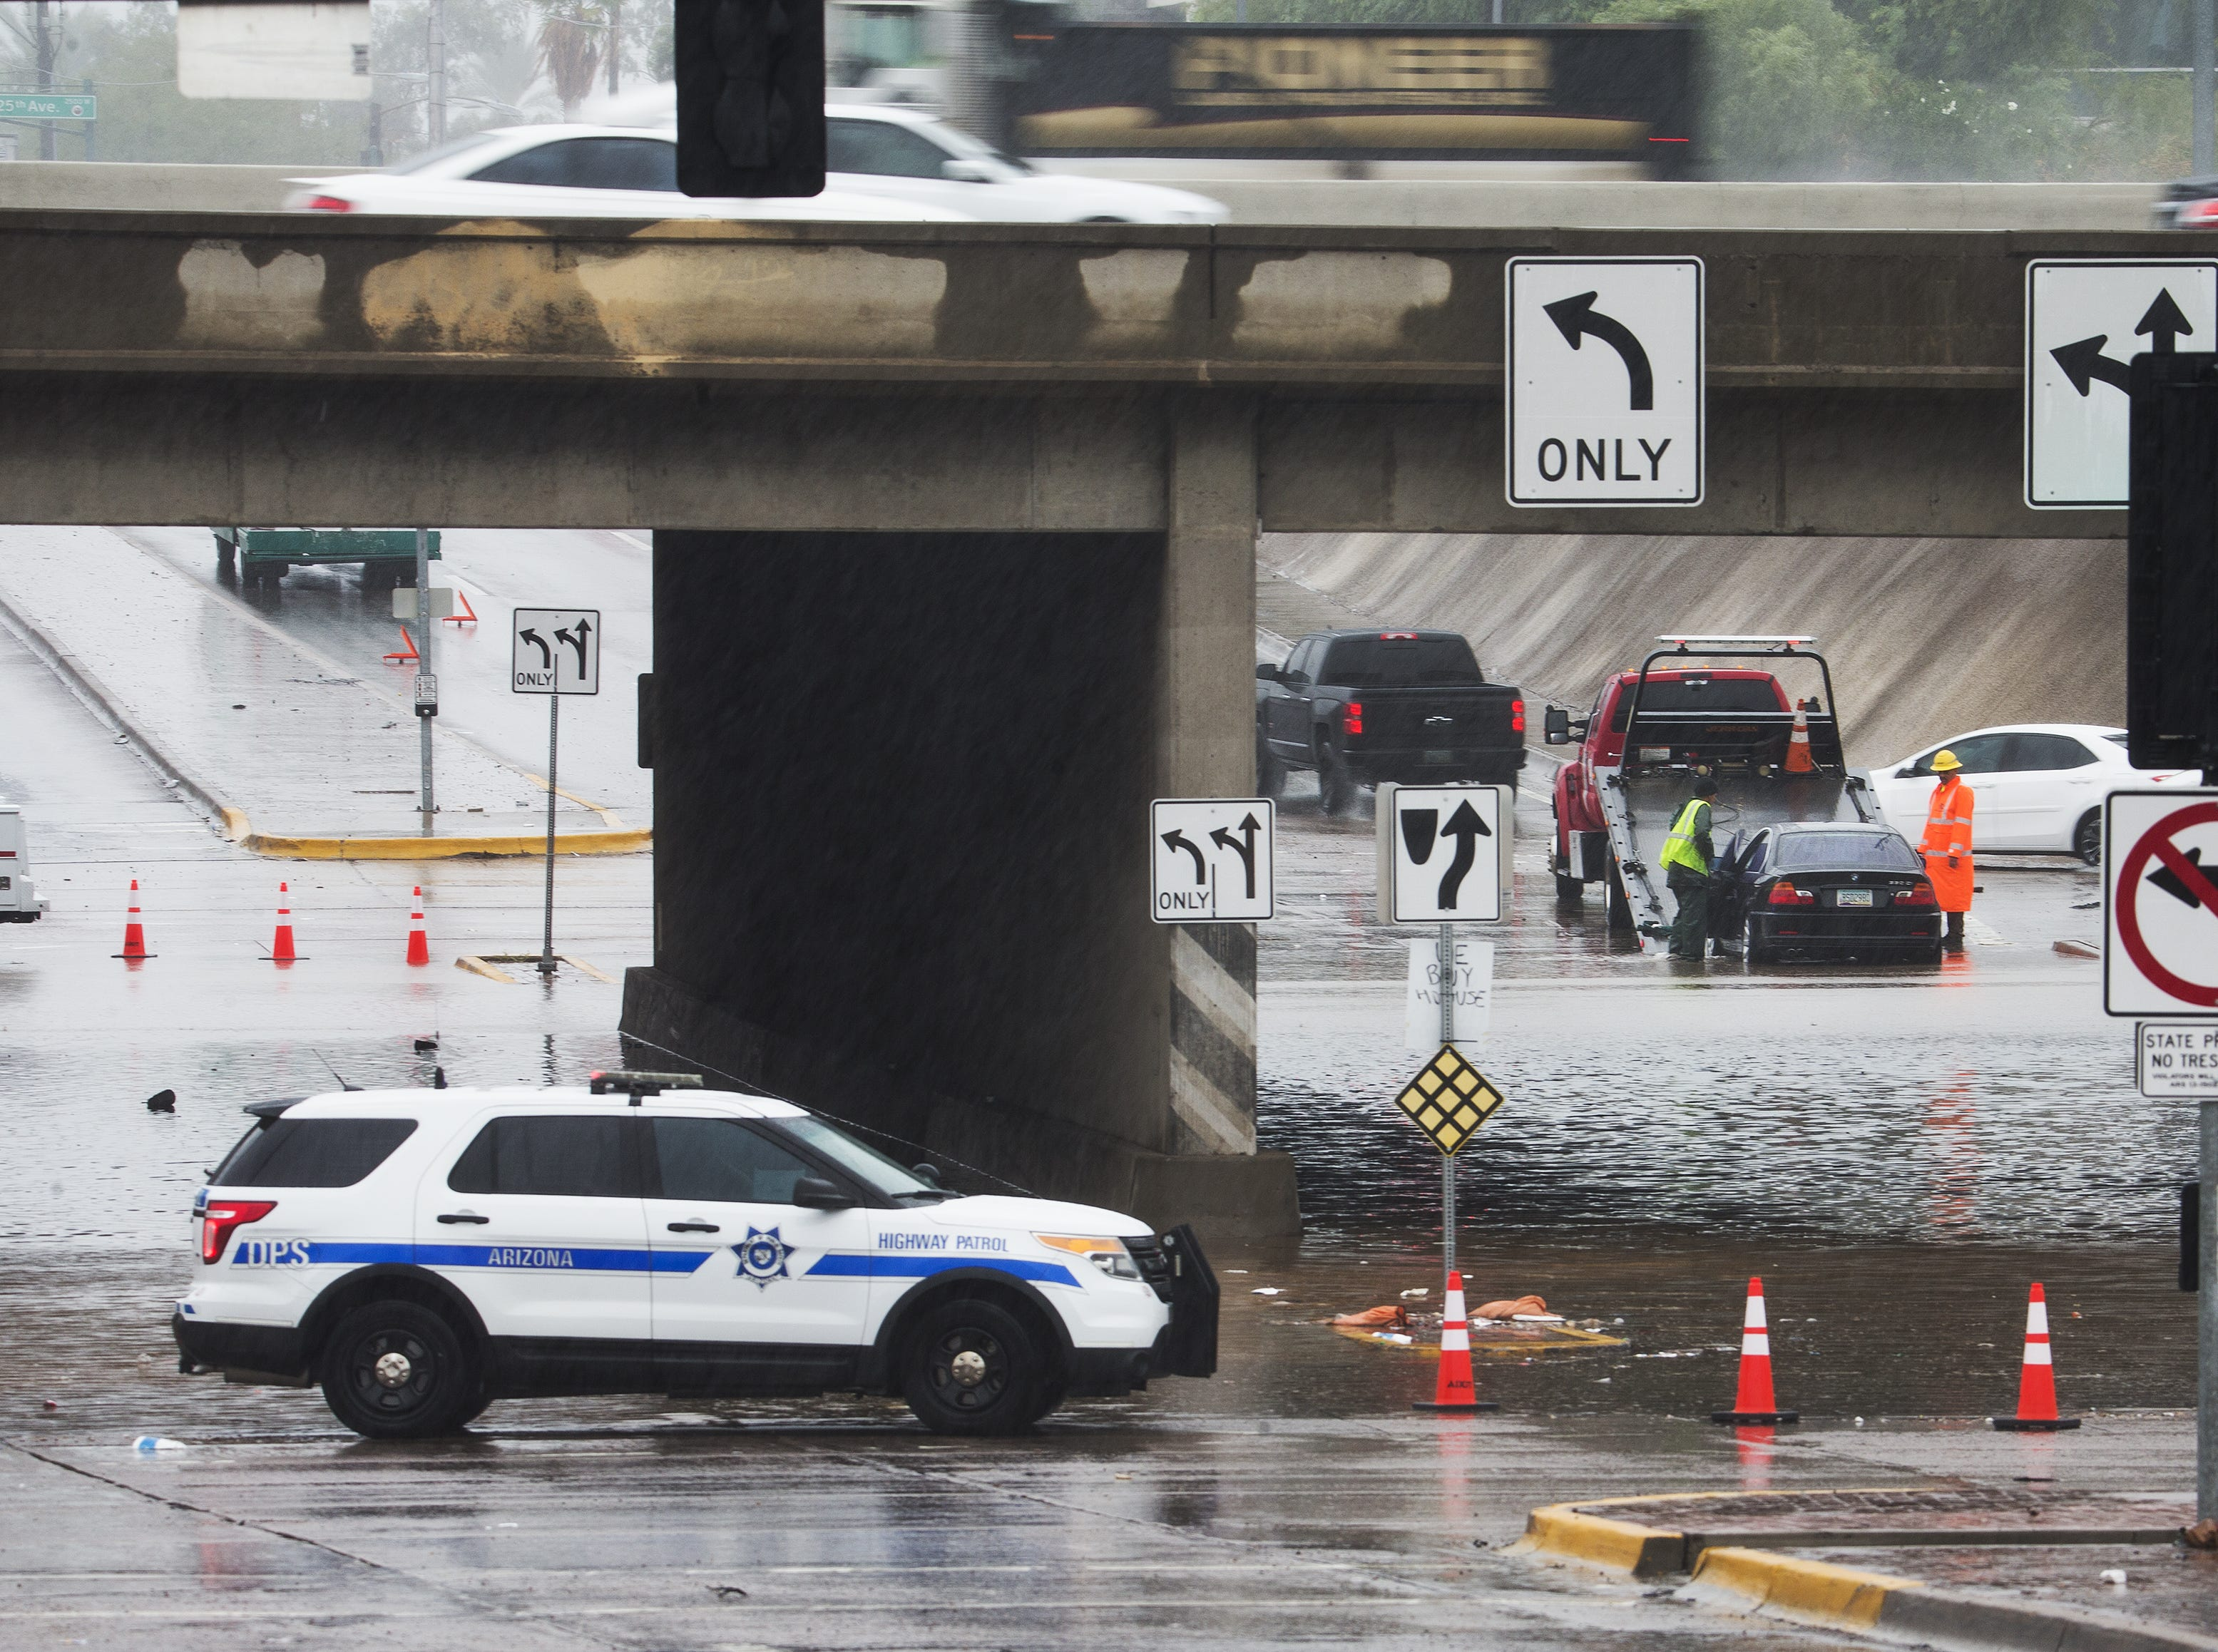 The Peoria Avenue underpass at I-17 in Phoenix is closed due to flooding, Tuesday morning, Oct. 2, 2018.